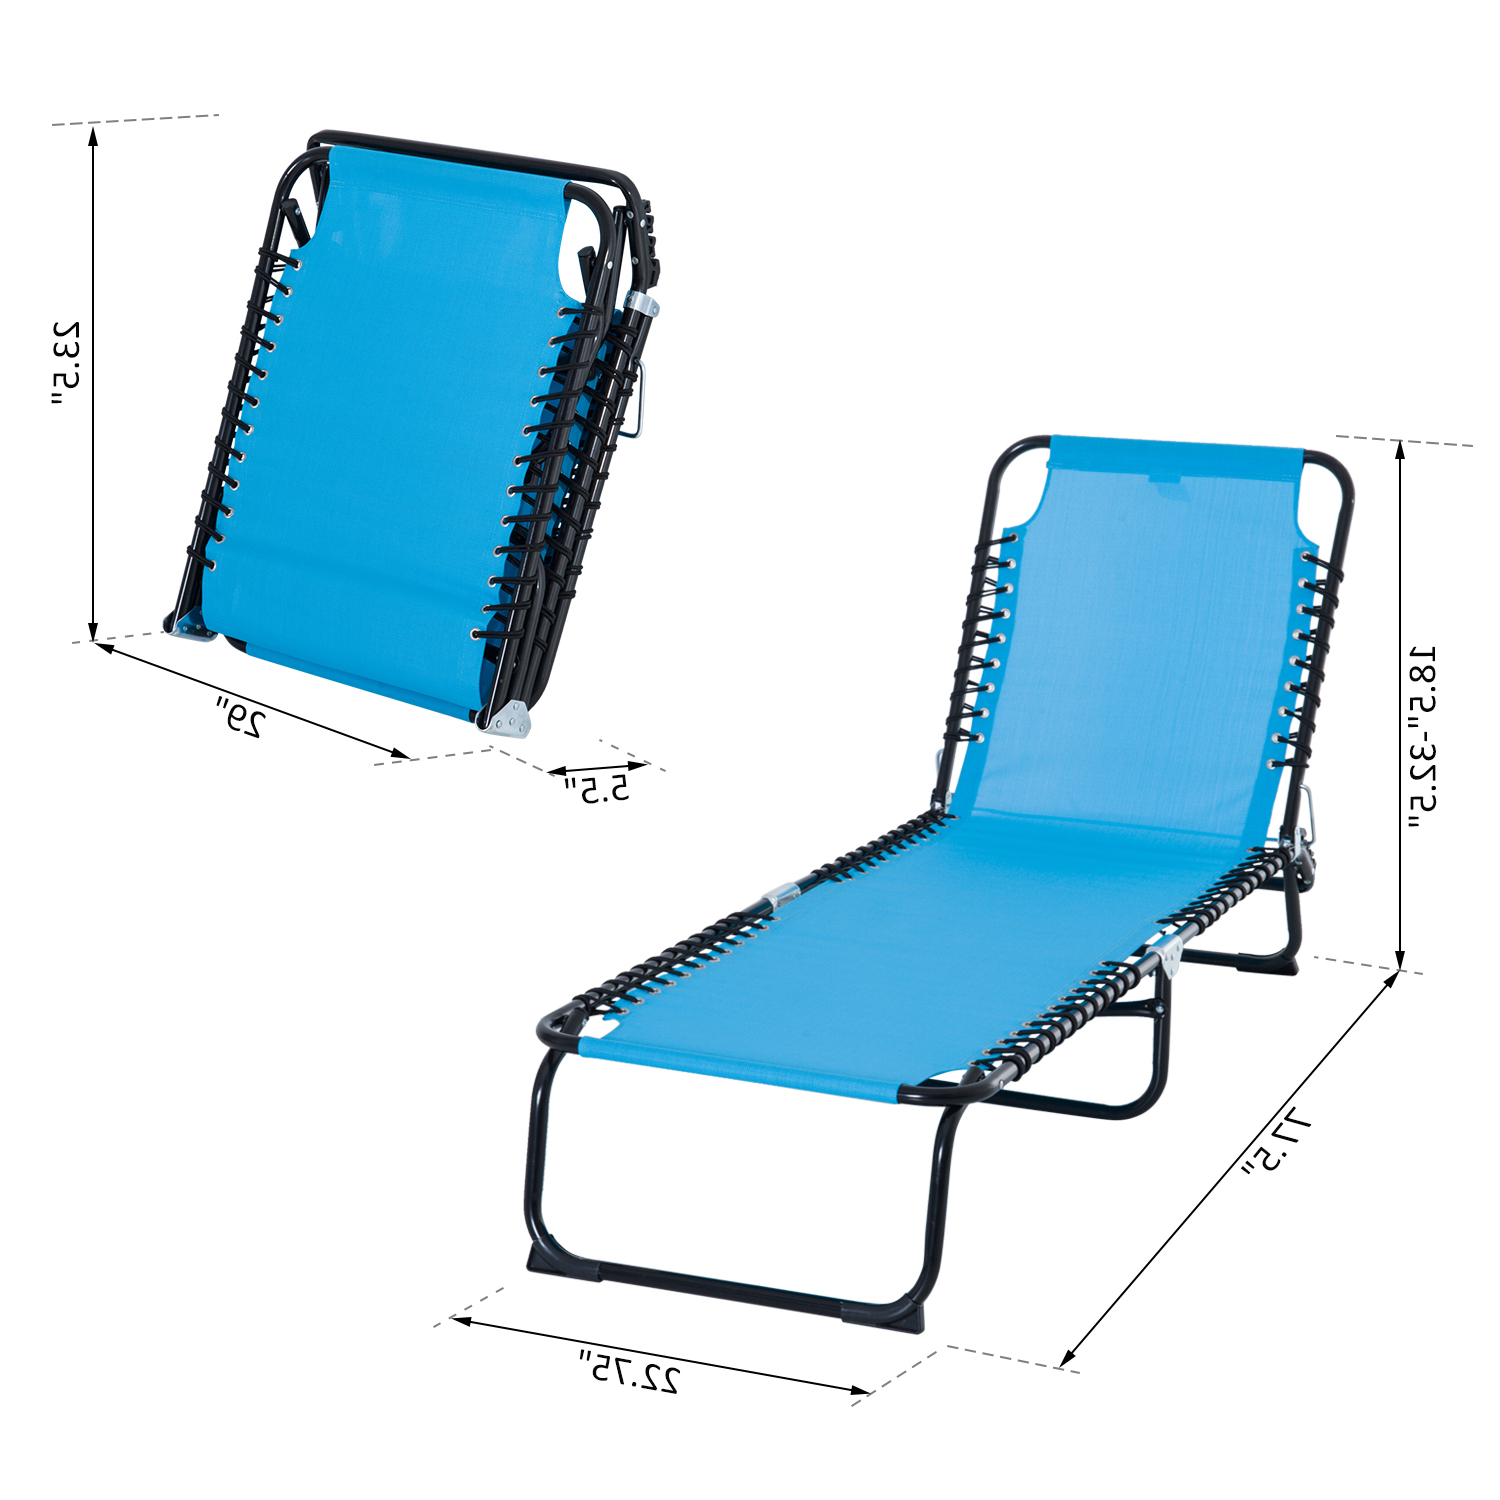 Outsunny Portable 3 Position Reclining Folding Beach Chaise Lounge Chair Within Popular 3 Position Portable Folding Reclining Beach Chaise Lounges (Gallery 3 of 25)